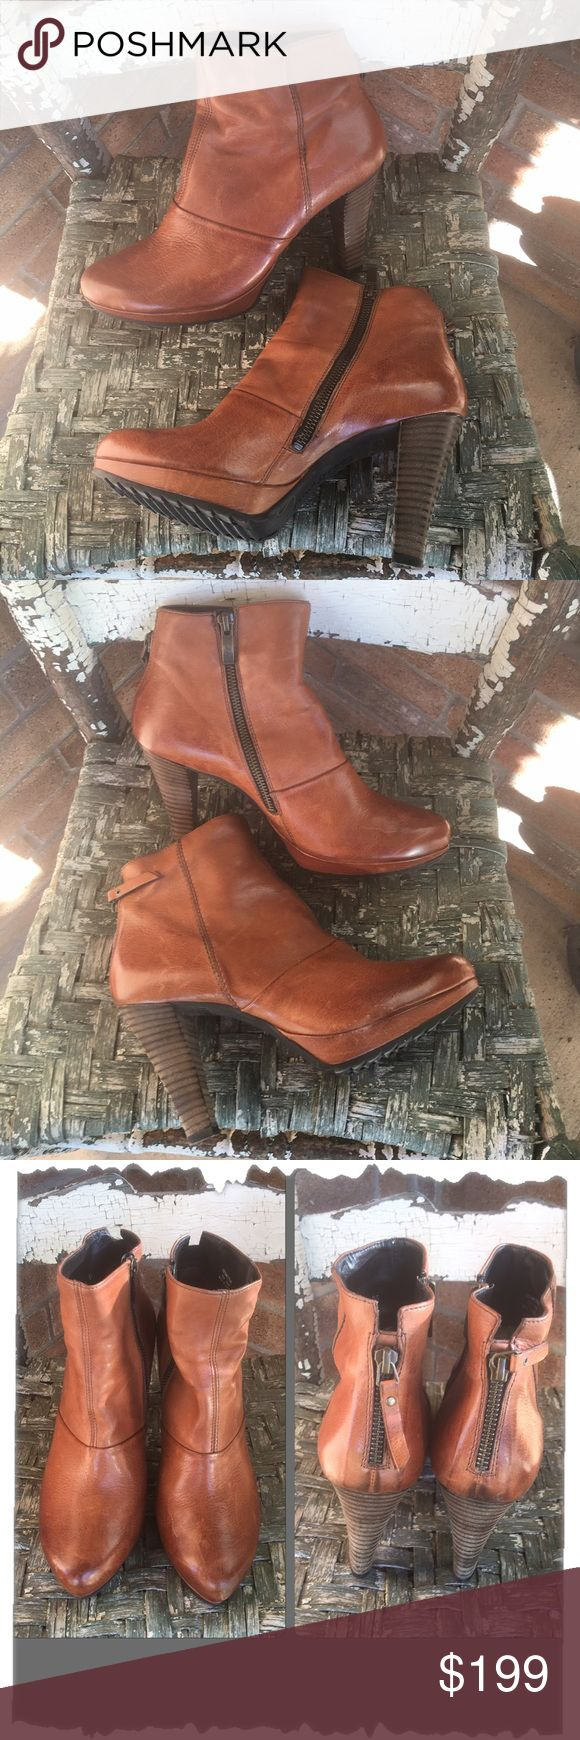 "Paul Green Munchen Tan Distressed Leather Boots Gorgeous Paul Green Munchen Tan Distressed Leather Boots. These are incredible and super comfy! Worn twice. Good condition! If you need more pictures or have questions please ask. Wood stacked heels are 4"" high with about a 1/2"" platform. Rubber soles for comfort and traction. Shaft is approx 6.5"" high. Inside functioning zipper. Backside decorative zipper. These are the perfect fall/winter boots. Wear them with jeans, skinniest, dress or…"